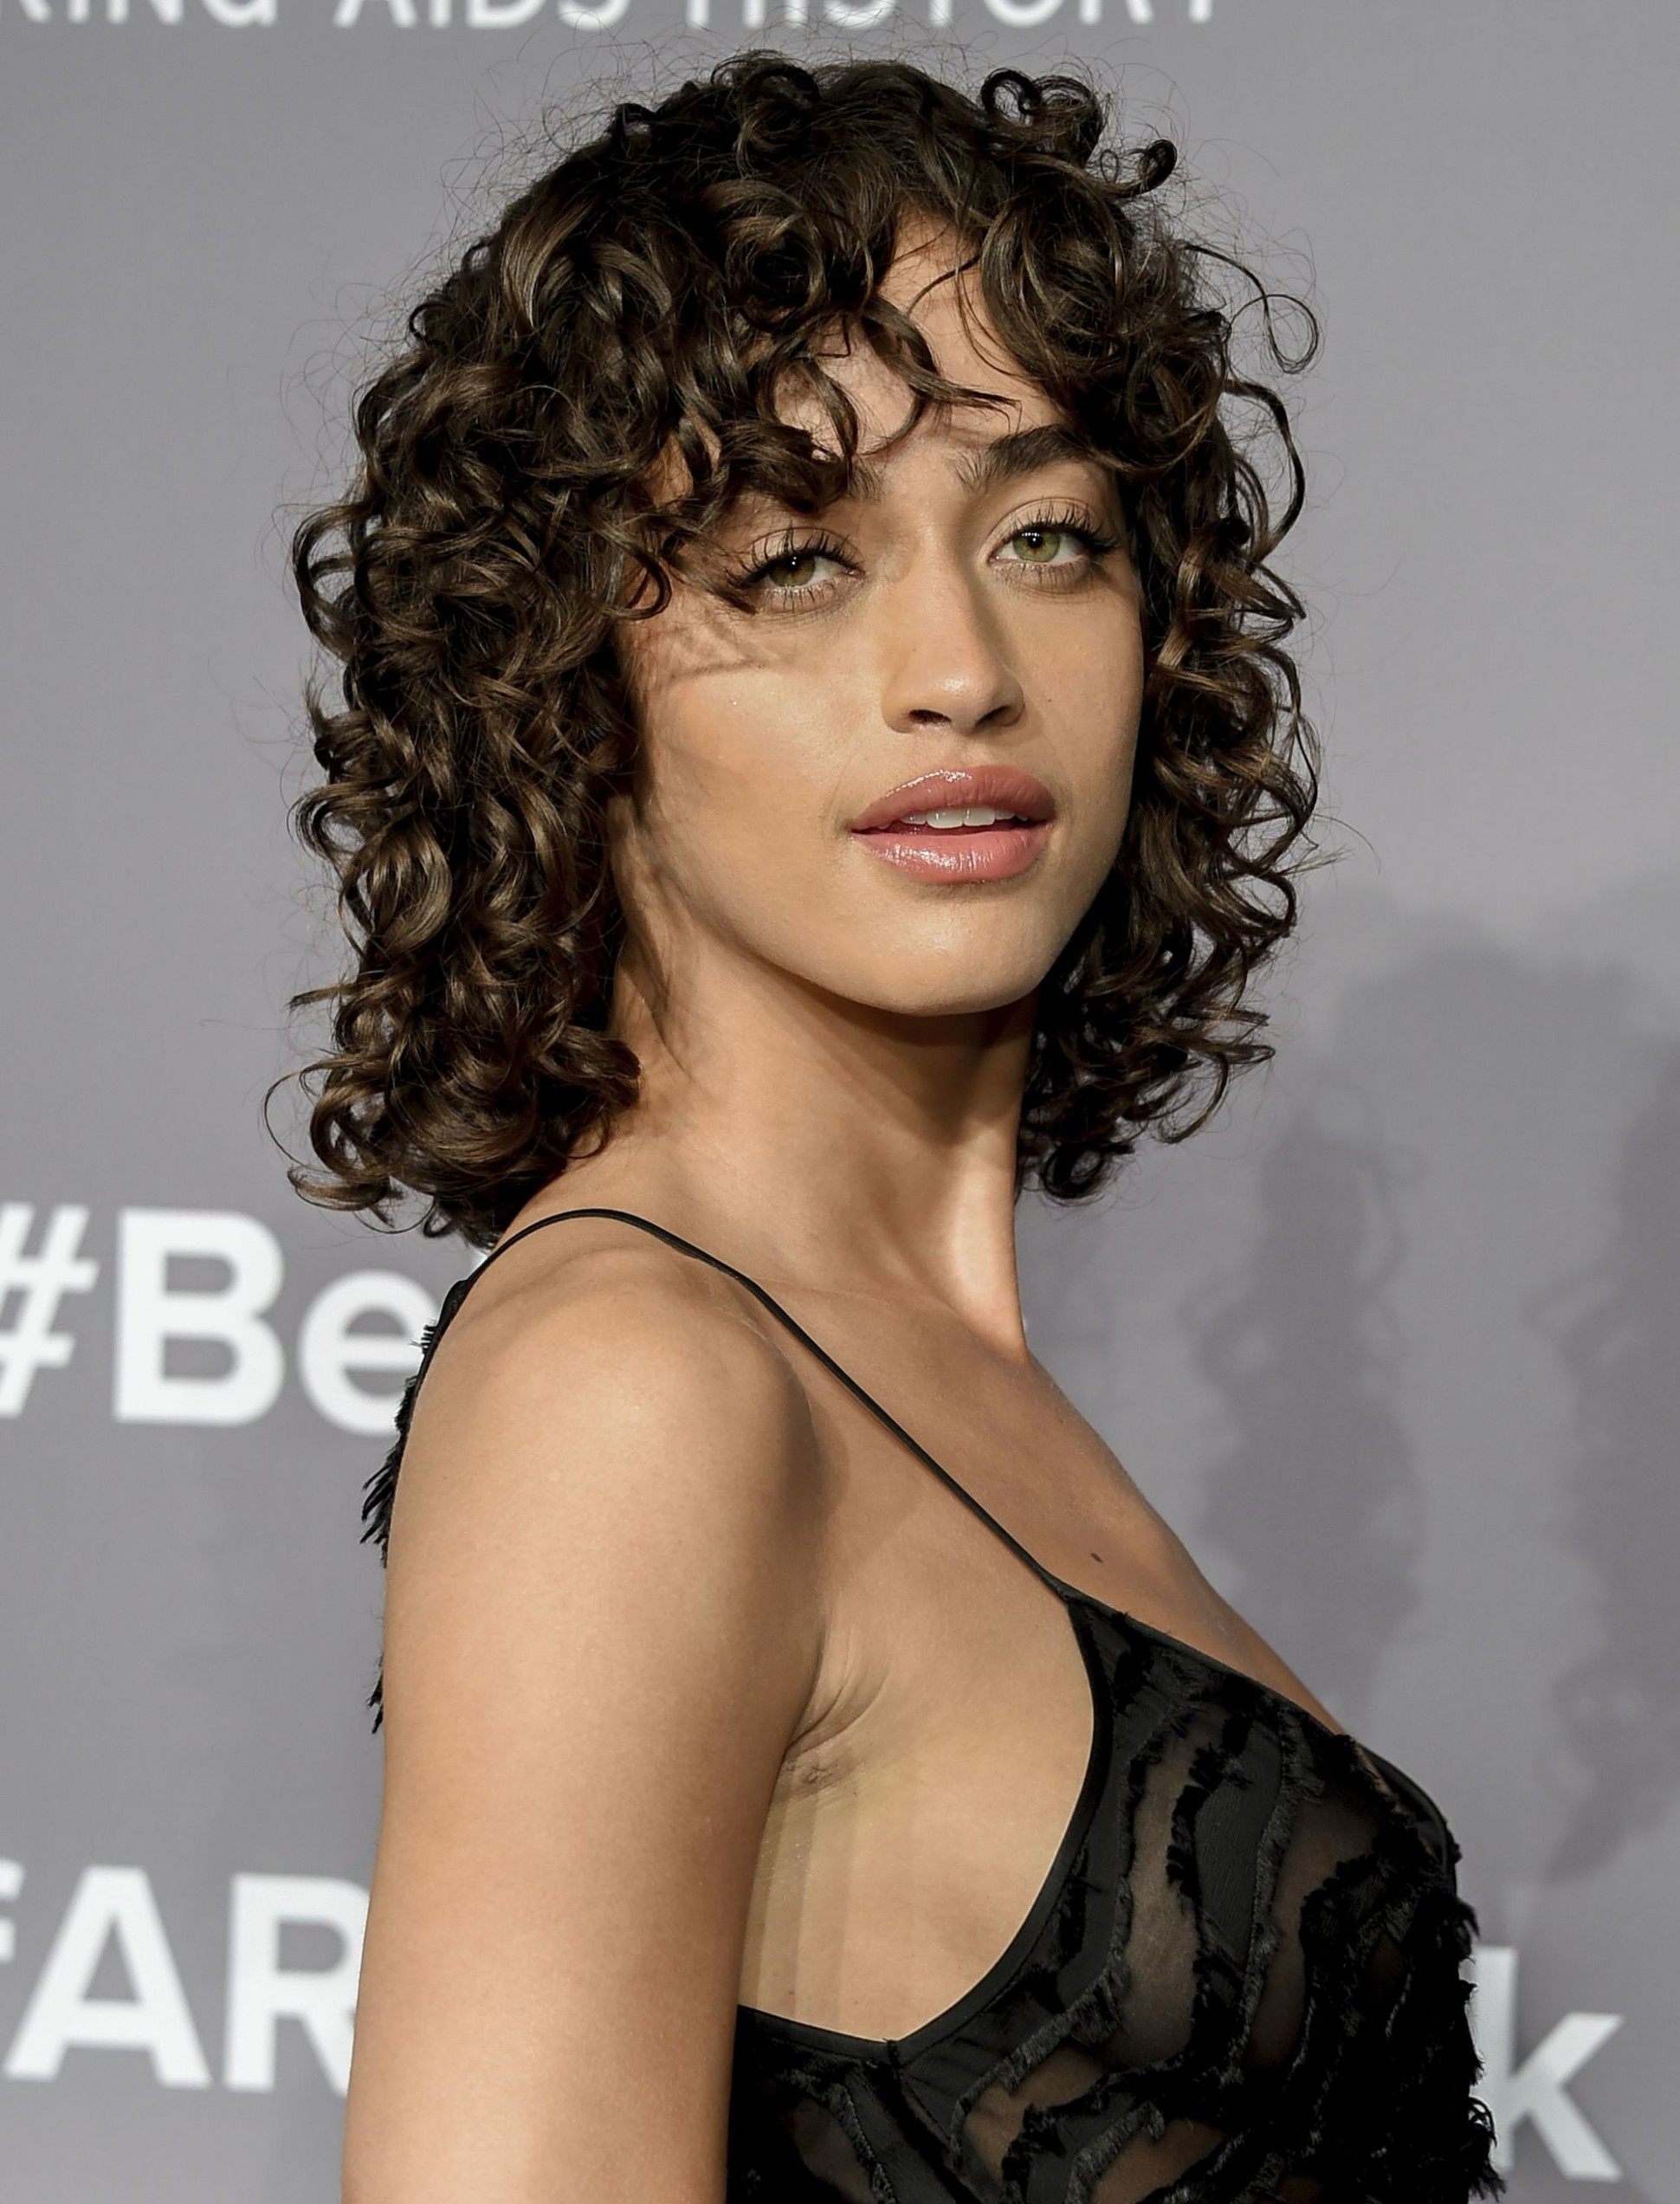 See how to style curly hair and bangs the A-list way